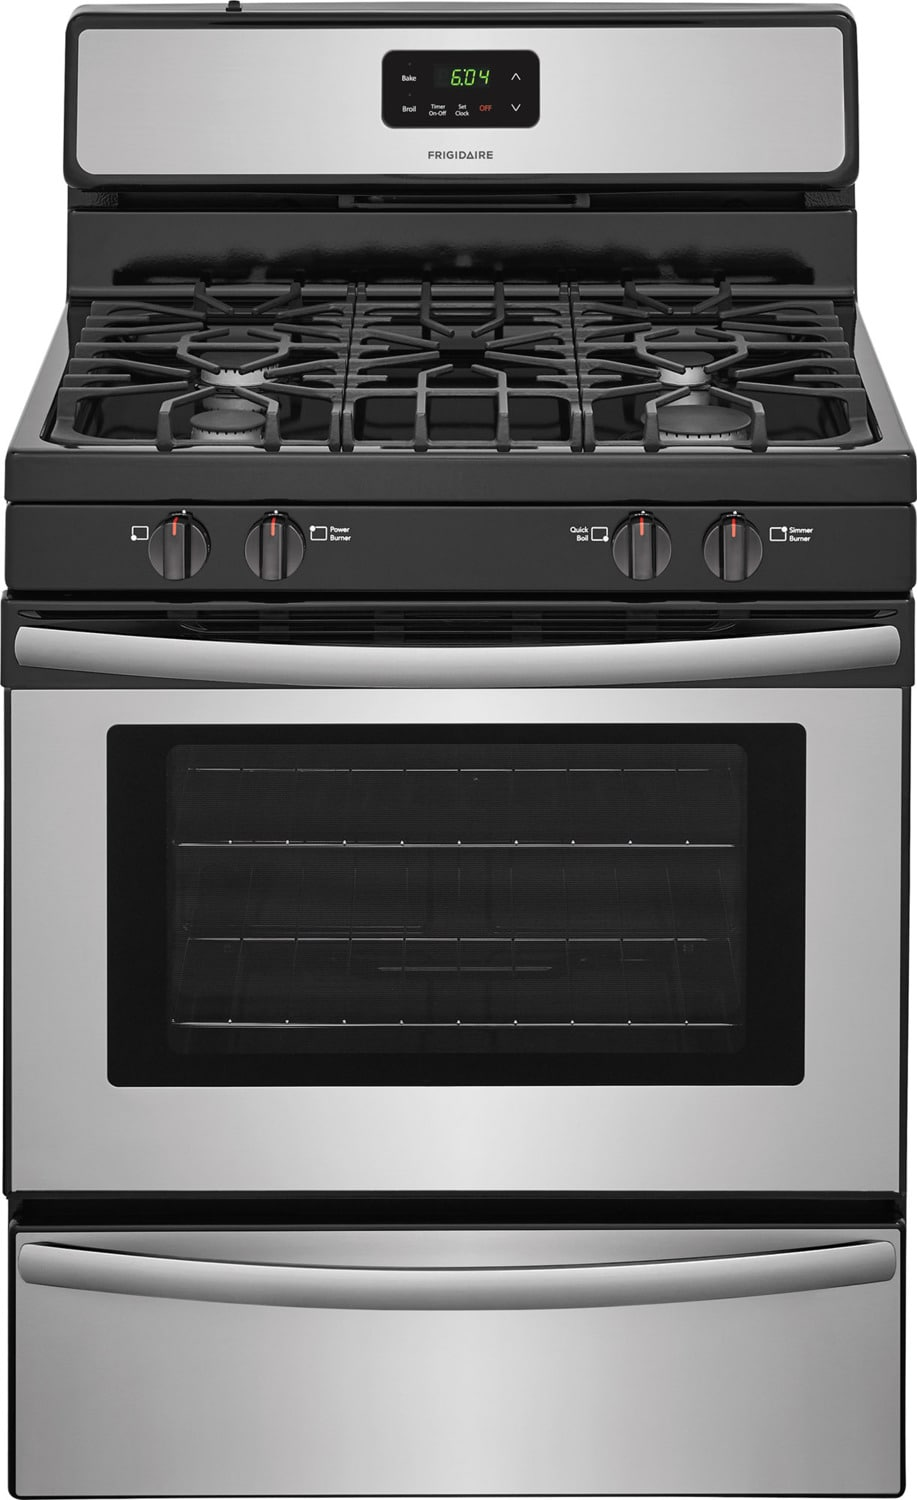 Frigidaire Stainless Steel Freestanding Gas Range (4.2 Cu. Ft.) - FFGF3051TS